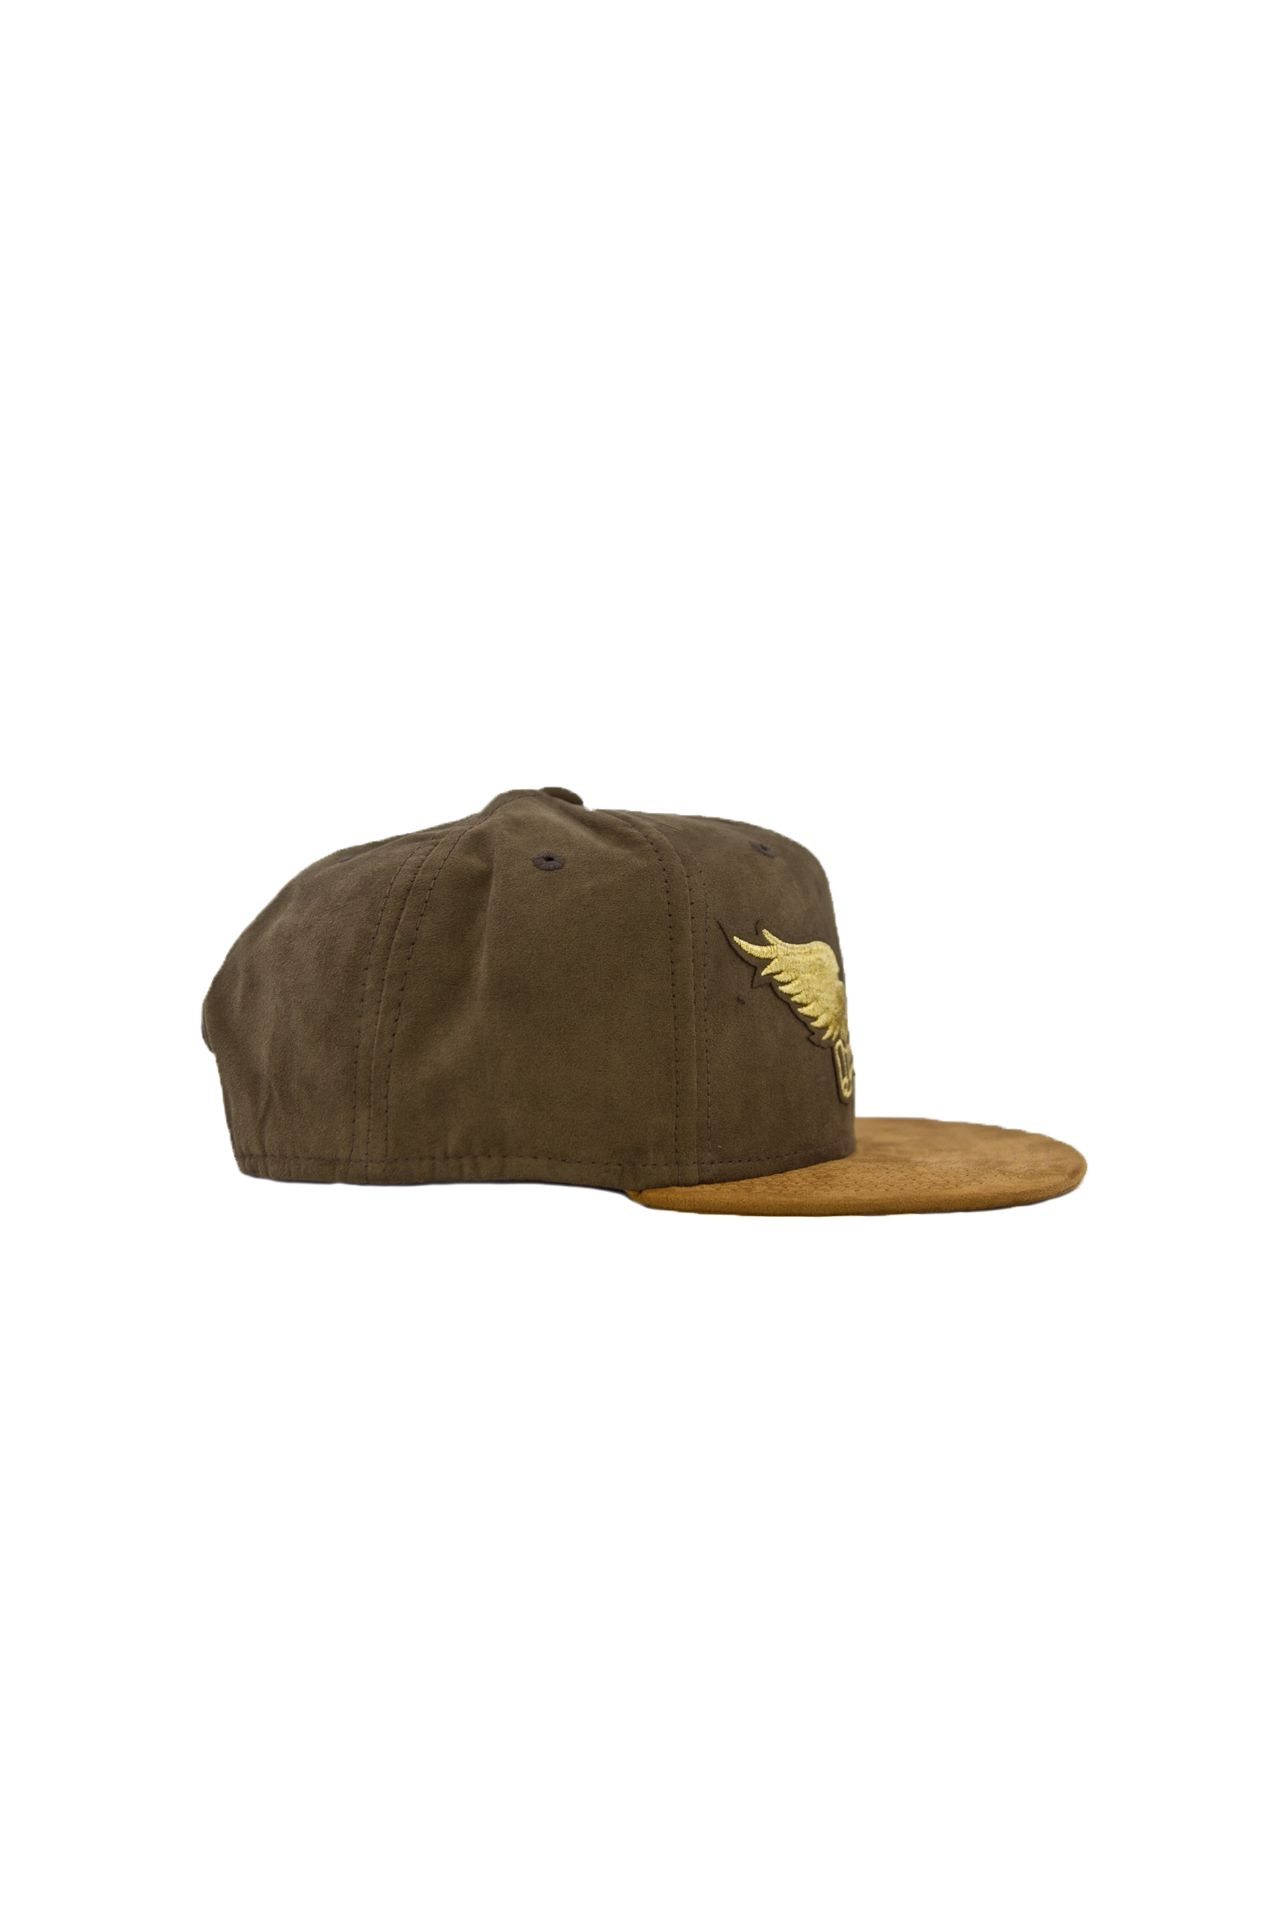 OLIVE & WHEAT SUEDE CAP GLD WINGS